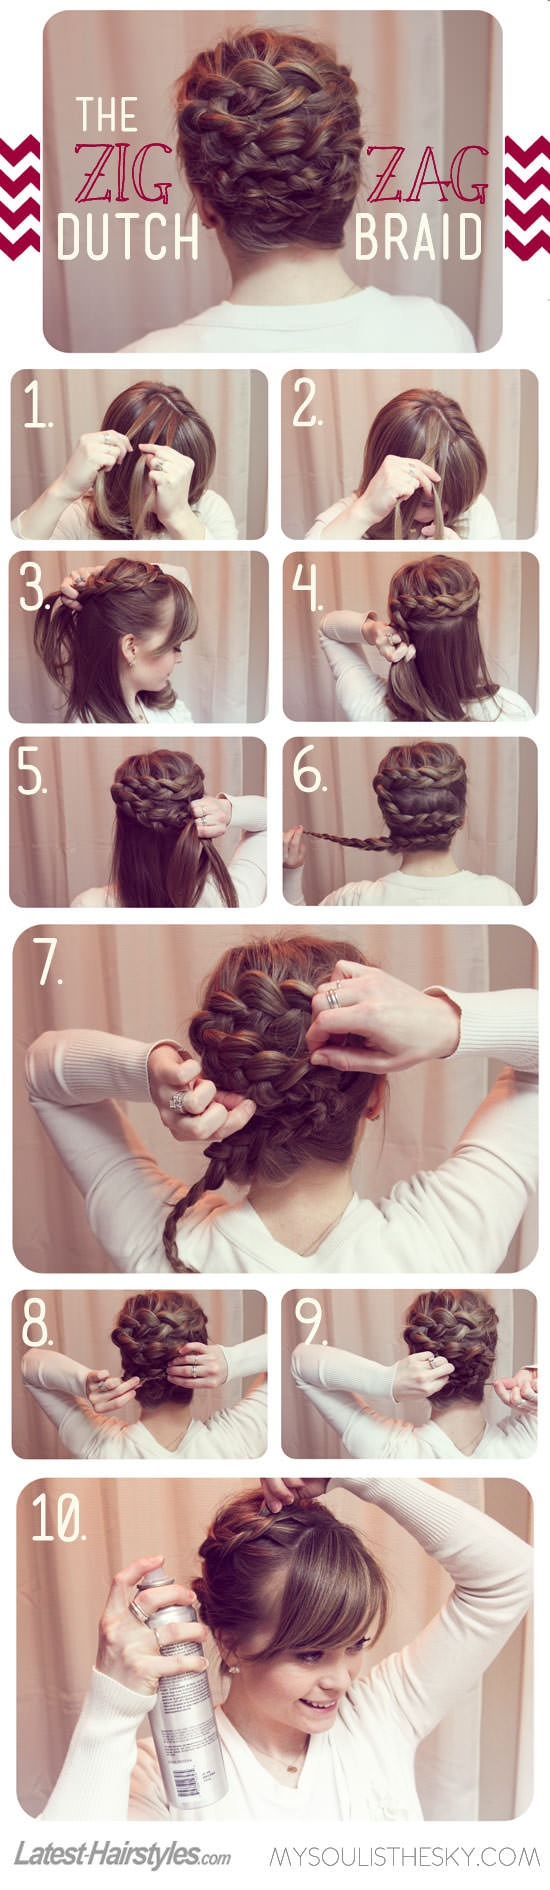 80a4e4d94 17 Stunning Dutch Braid Hairstyles With Tutorials - Pretty Designs